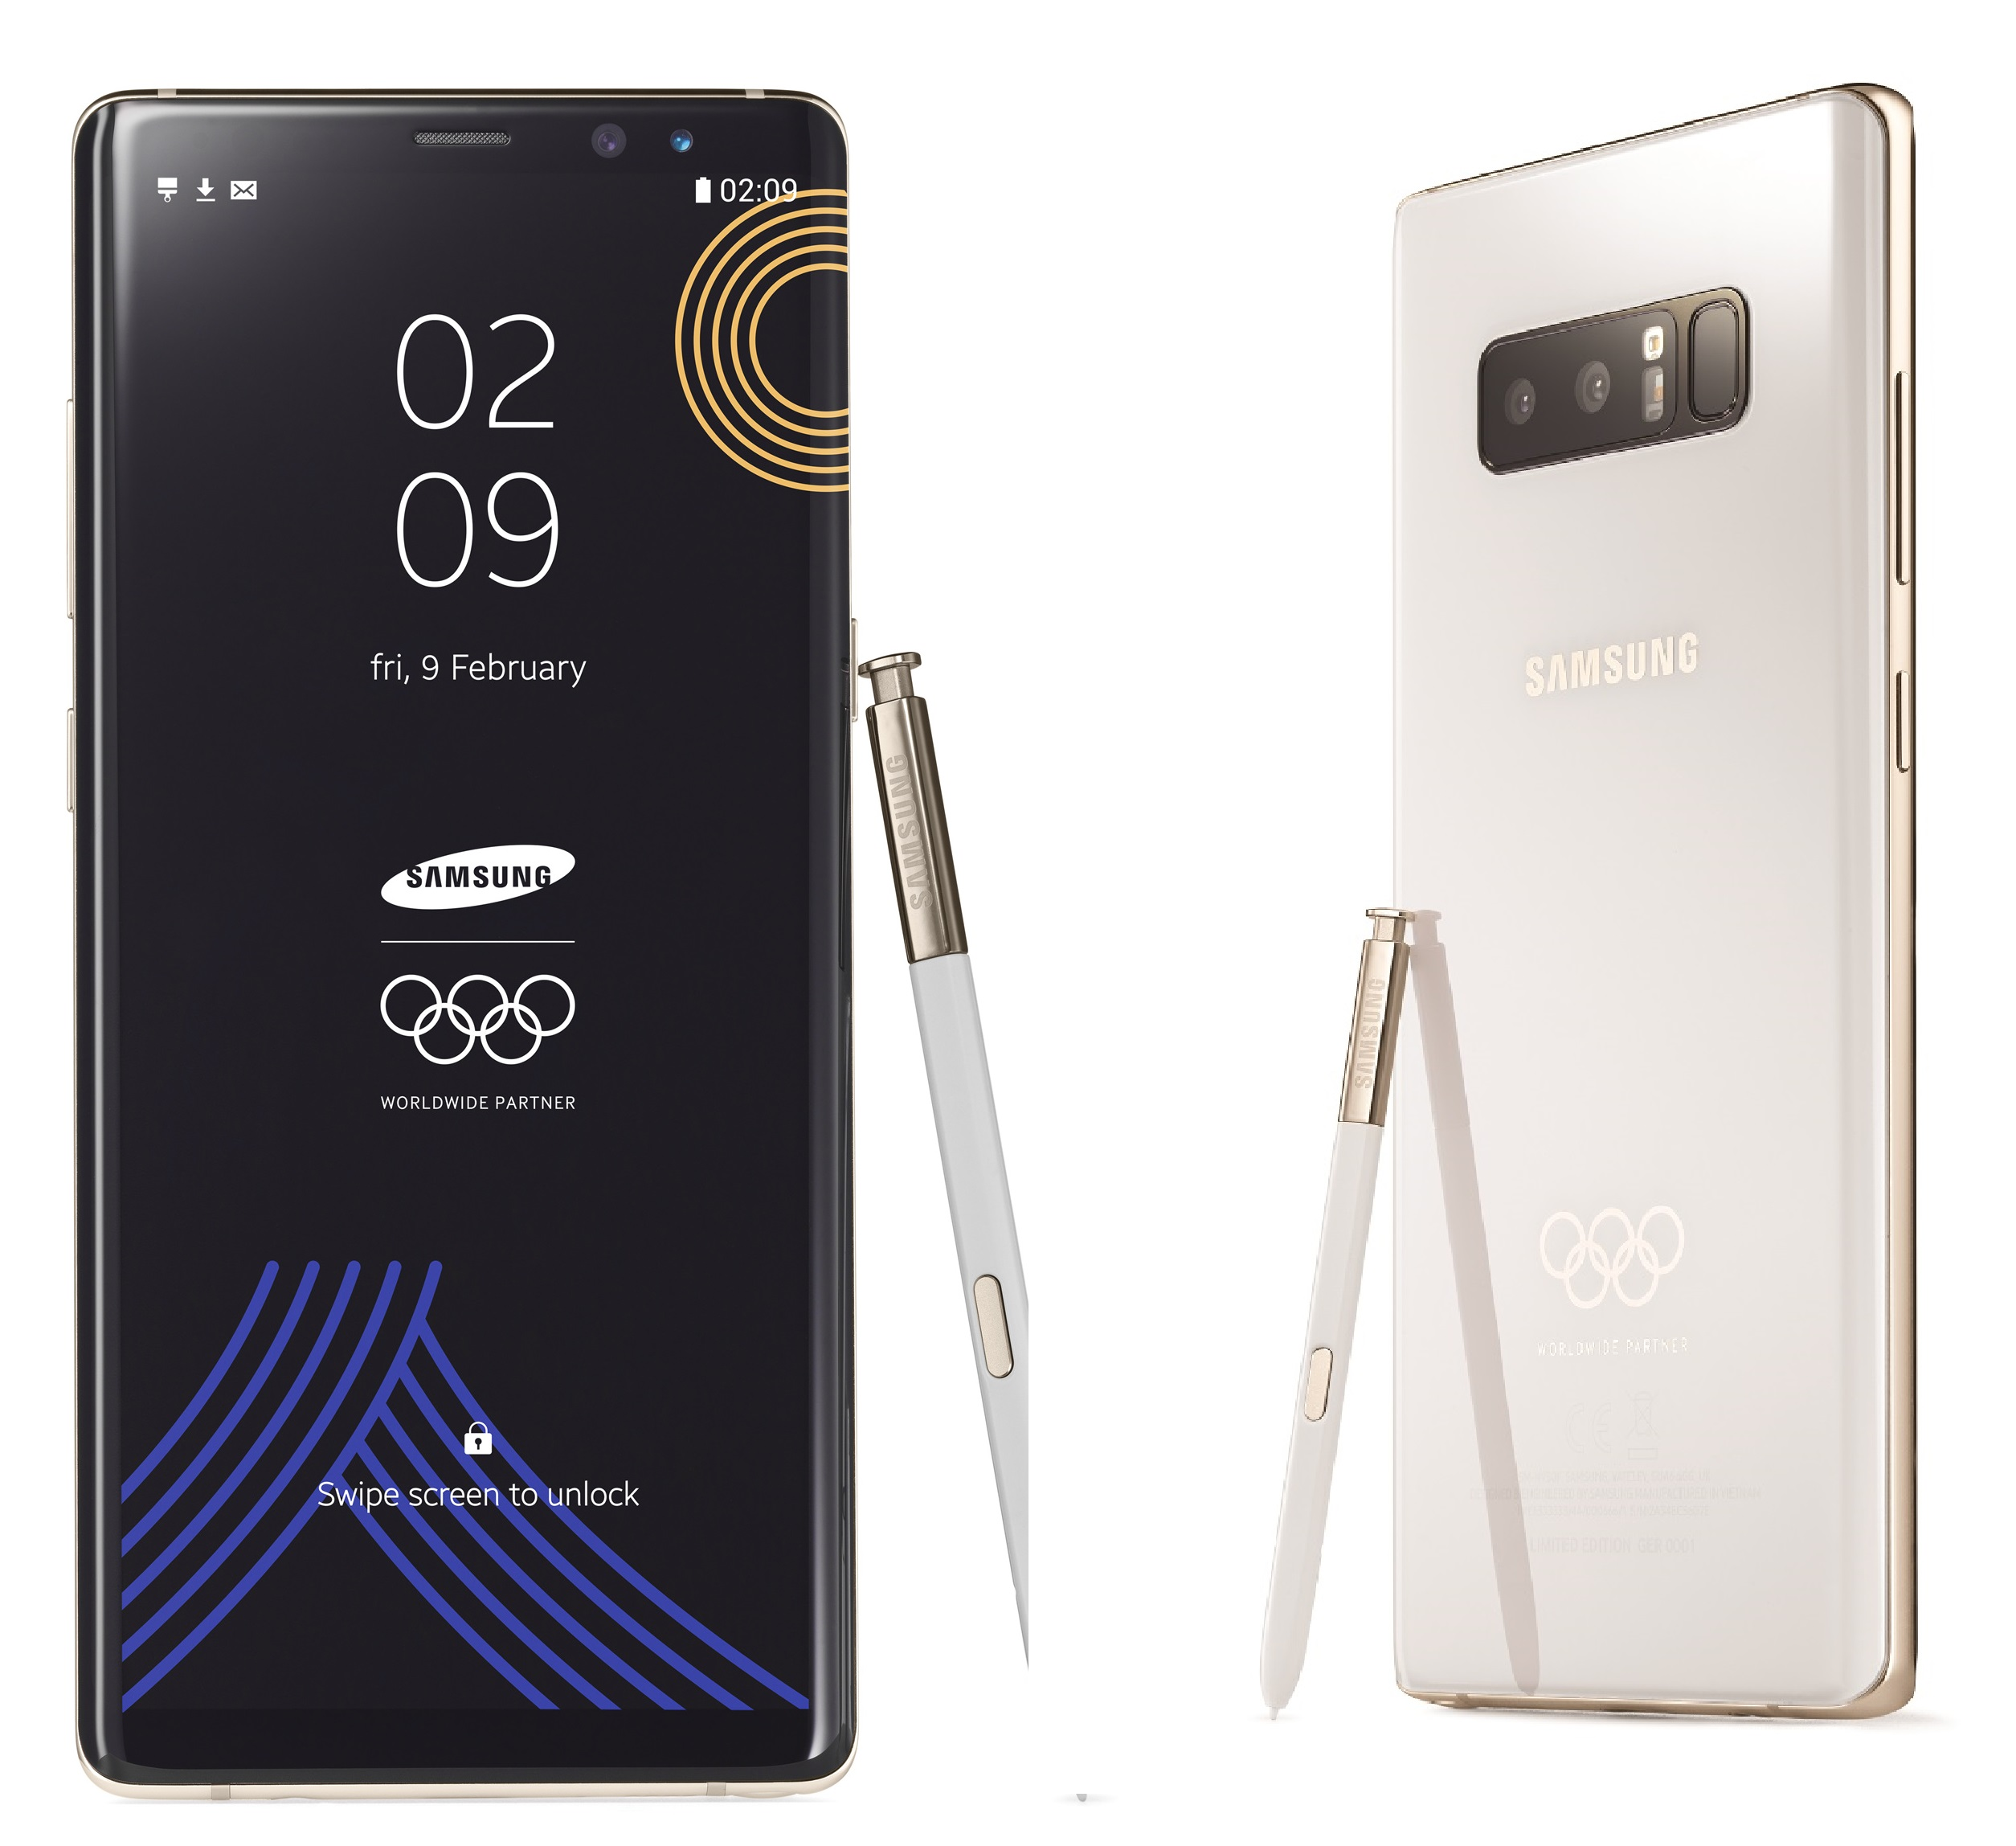 Samsung Announces Limited Edition Galaxy Note 8 for Upcoming Winter